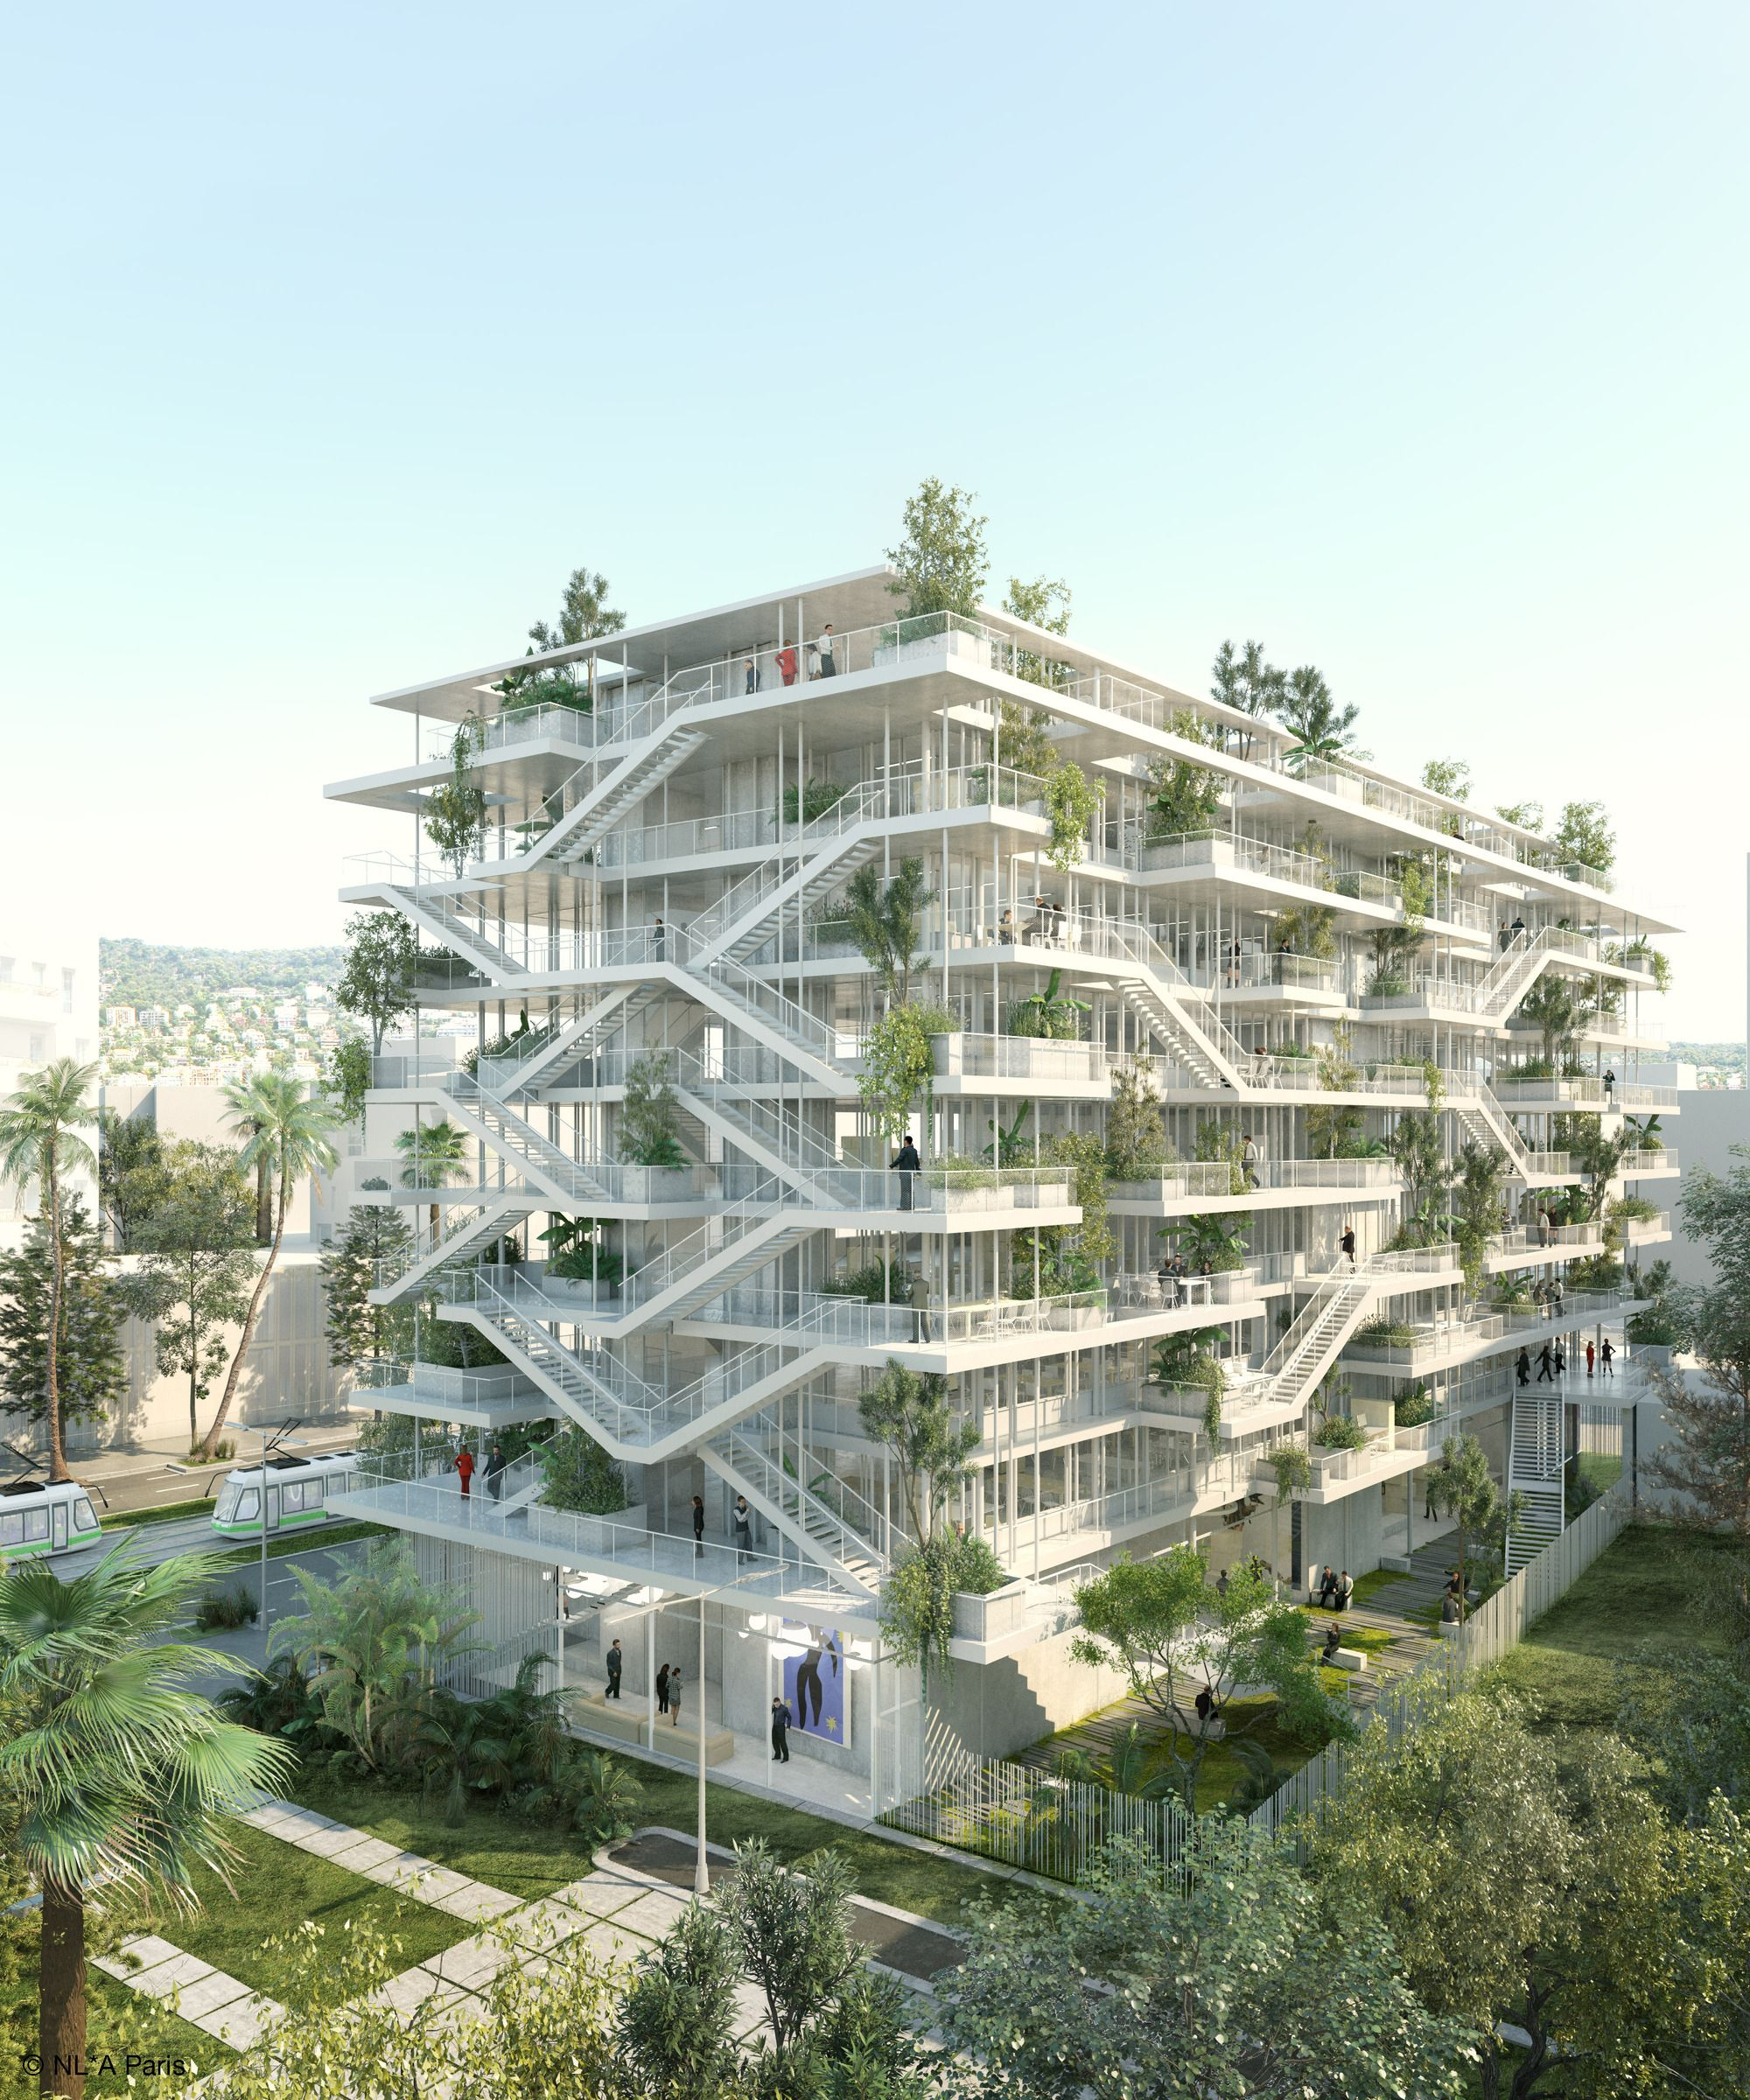 uc concept architectural design ltd. Nicolas Laisn  Associ s NL A Paris has revealed plans for its new Offices With Terraces an office building in Nice France Gallery of Reveals Plans Open Concept Green Office